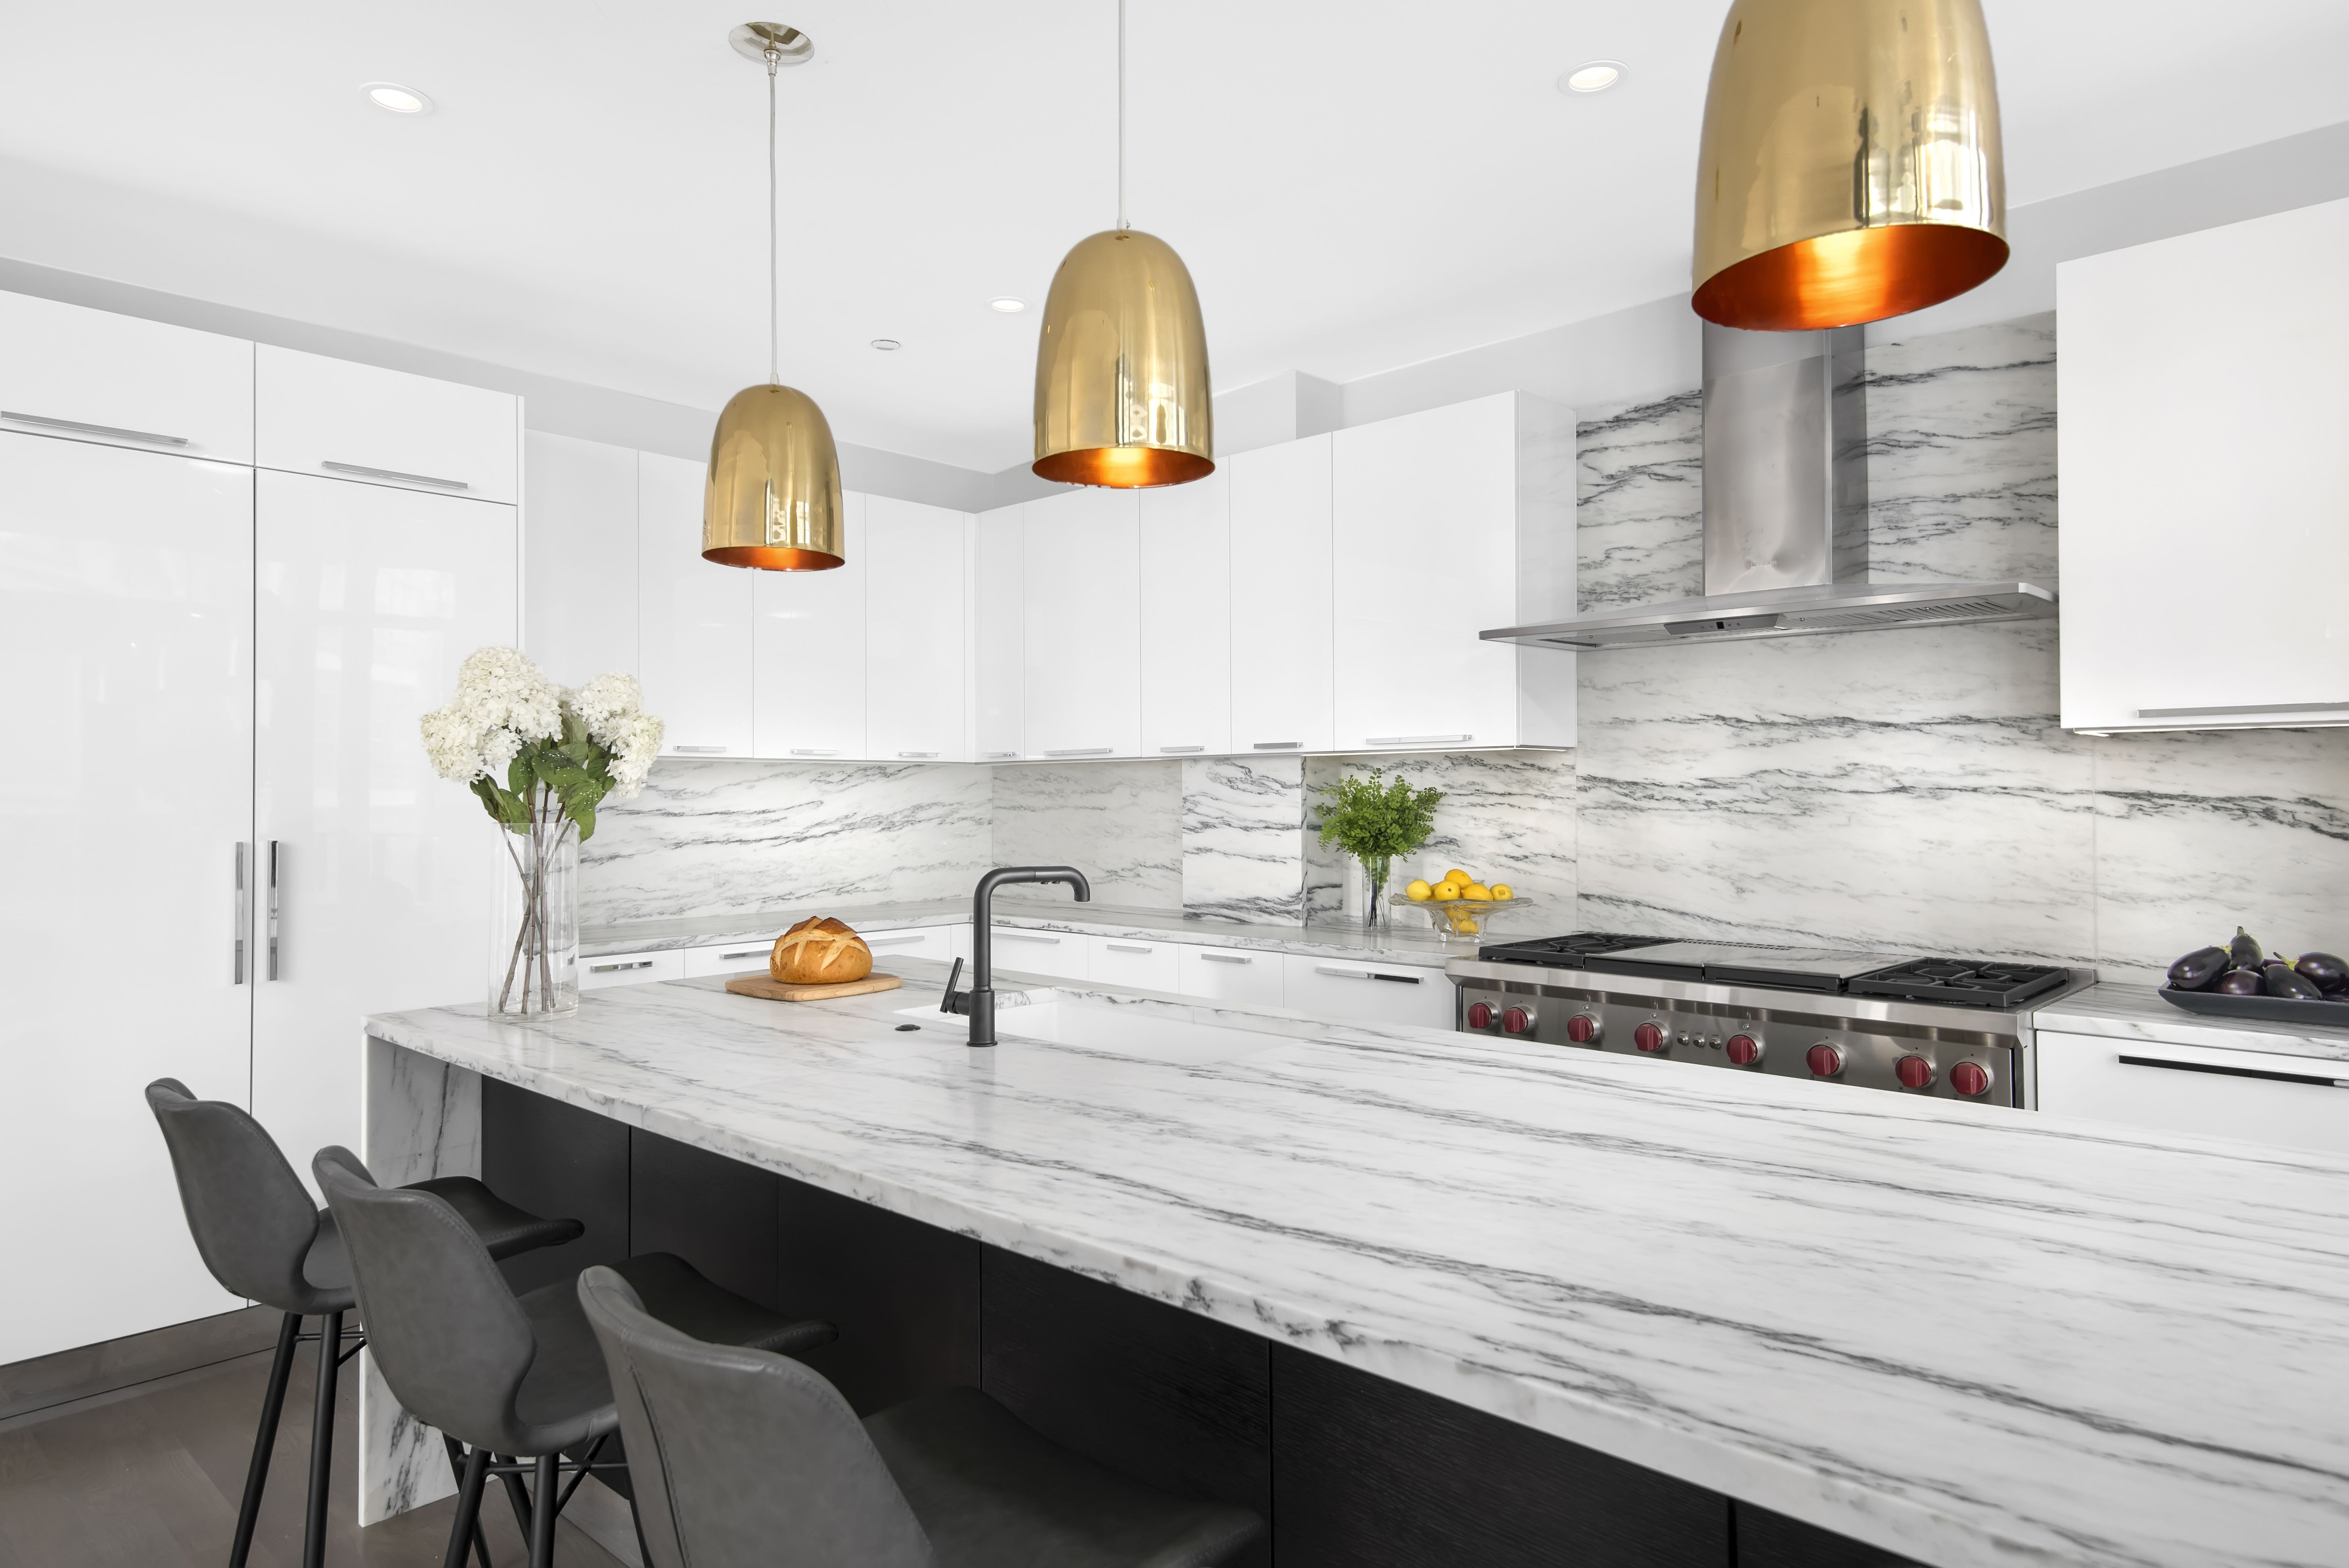 Portfolio Of Custom Kitchens And Renovation Projects With Images White Modern Kitchen White Kitchen Design Modern Kitchen Island Design